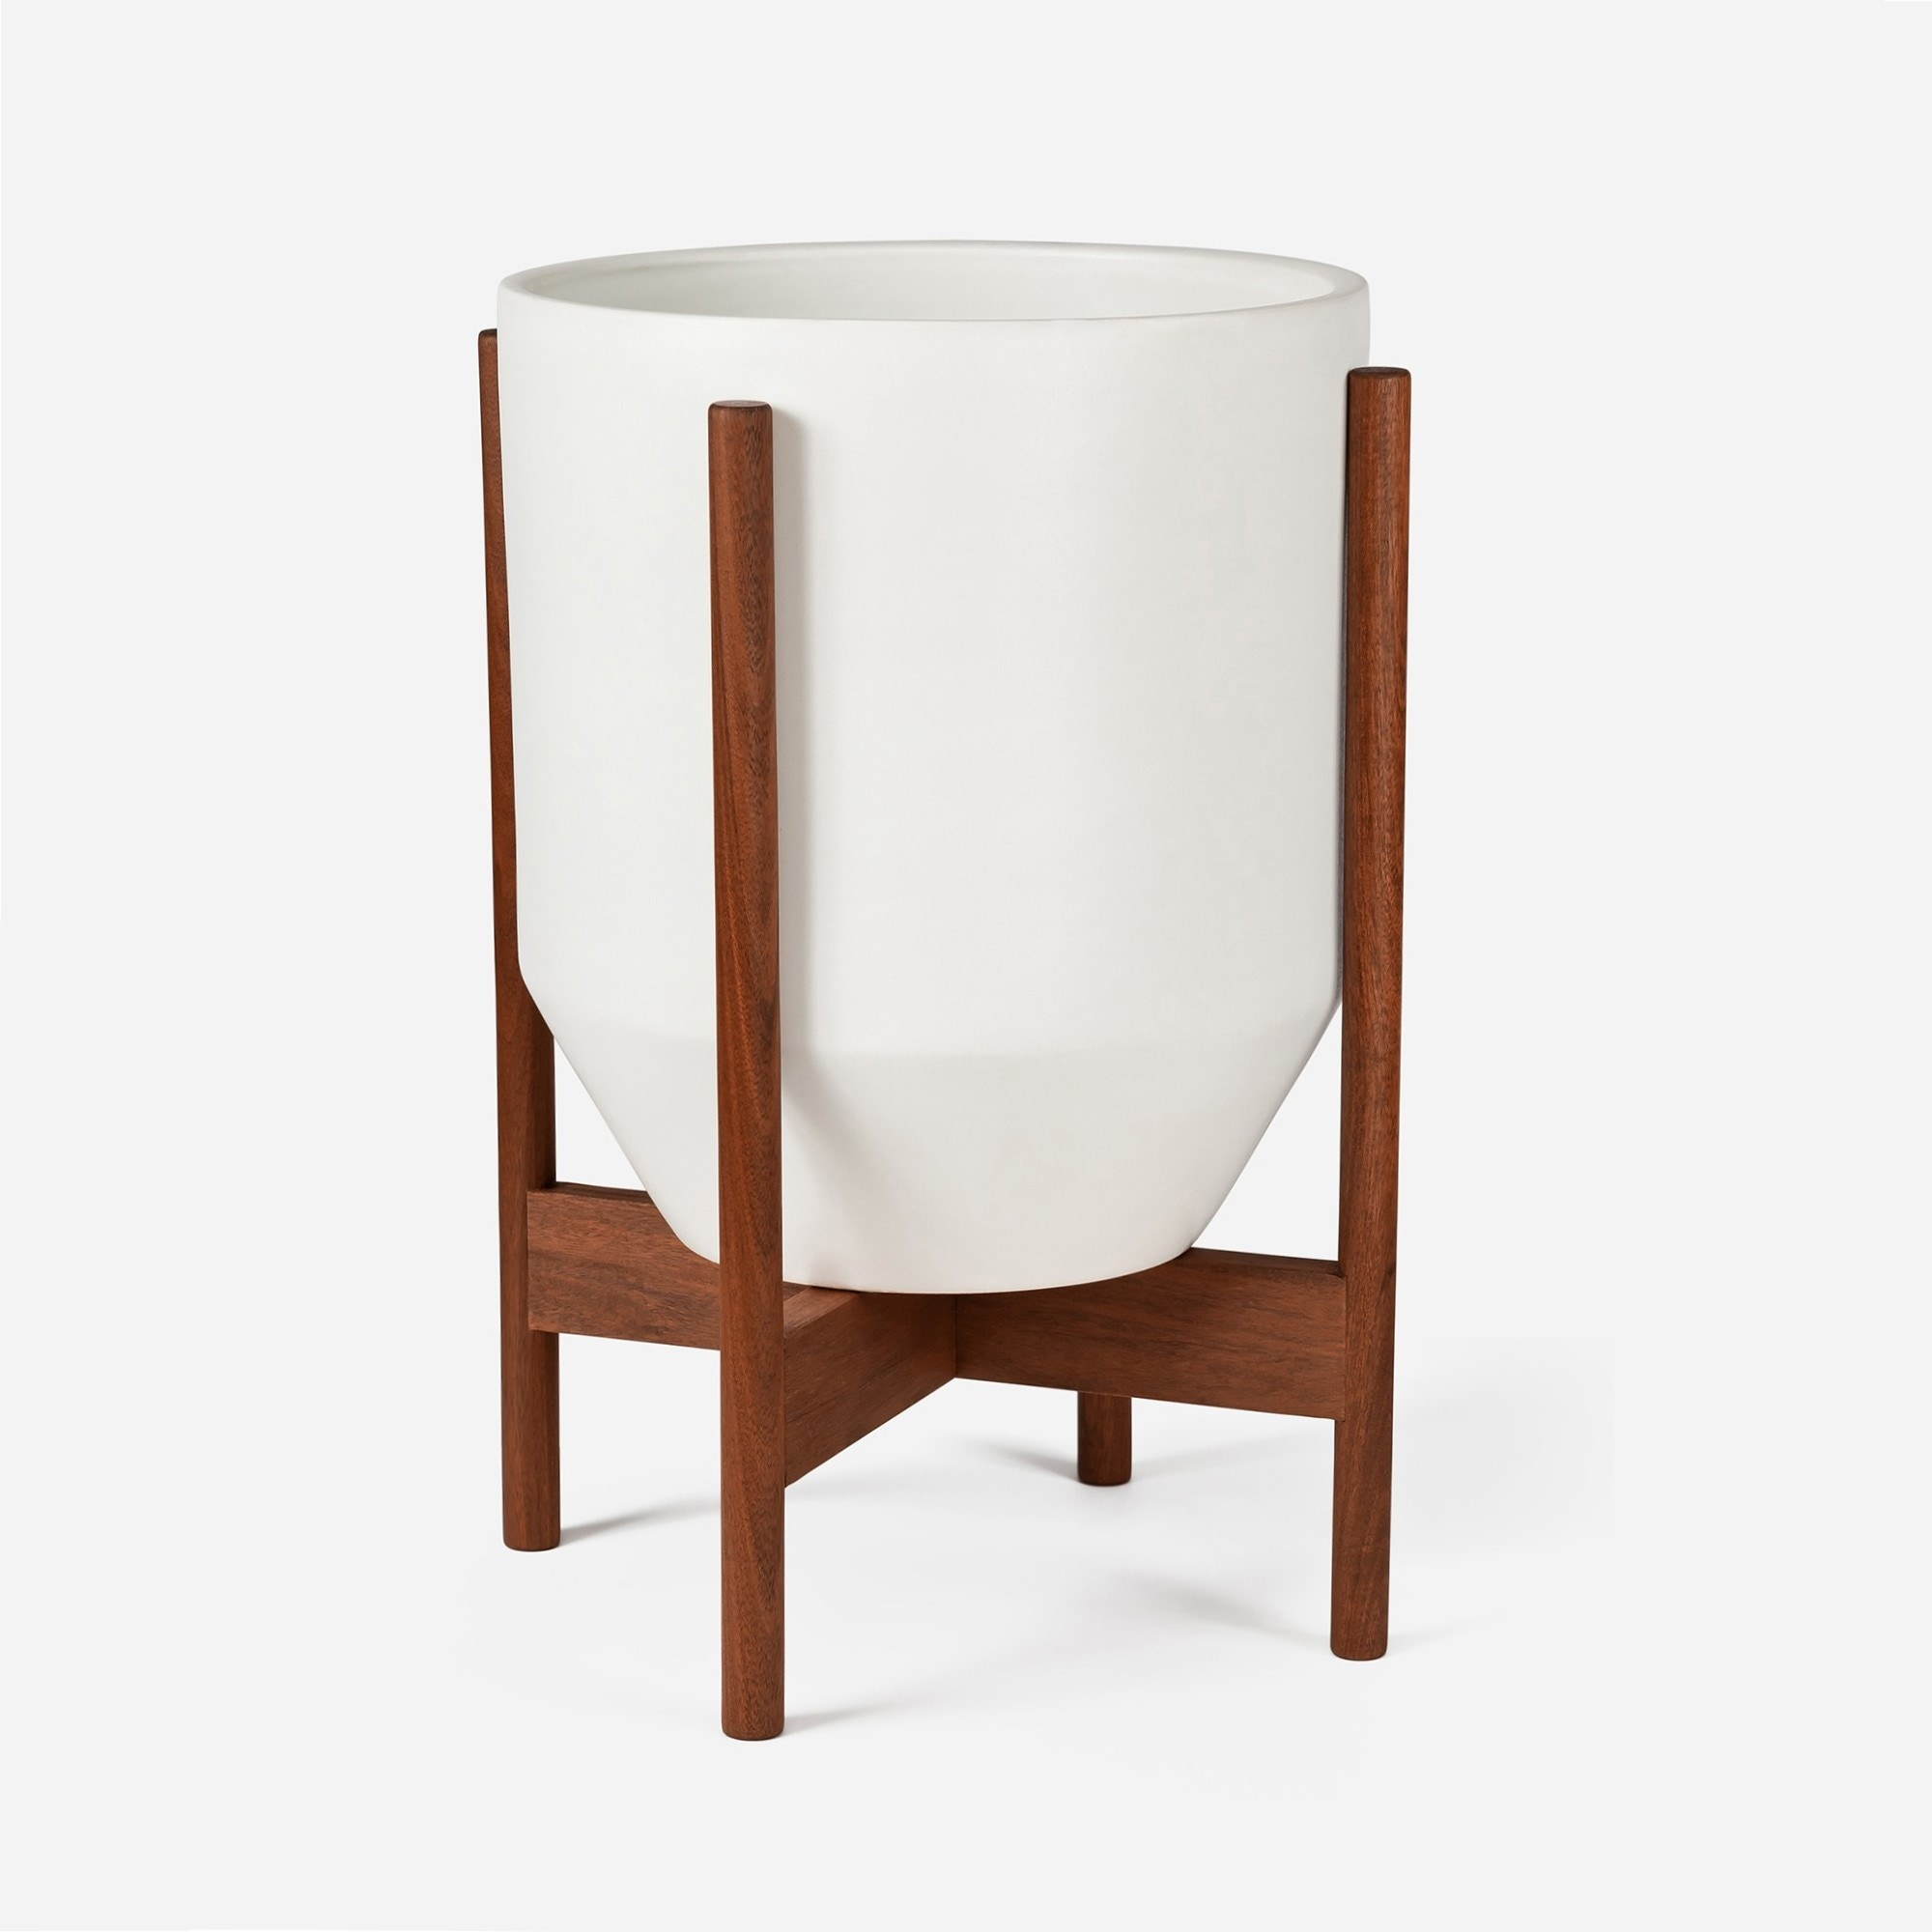 Modernica Case Study® Ceramics Small Hex With Stand (Planter)